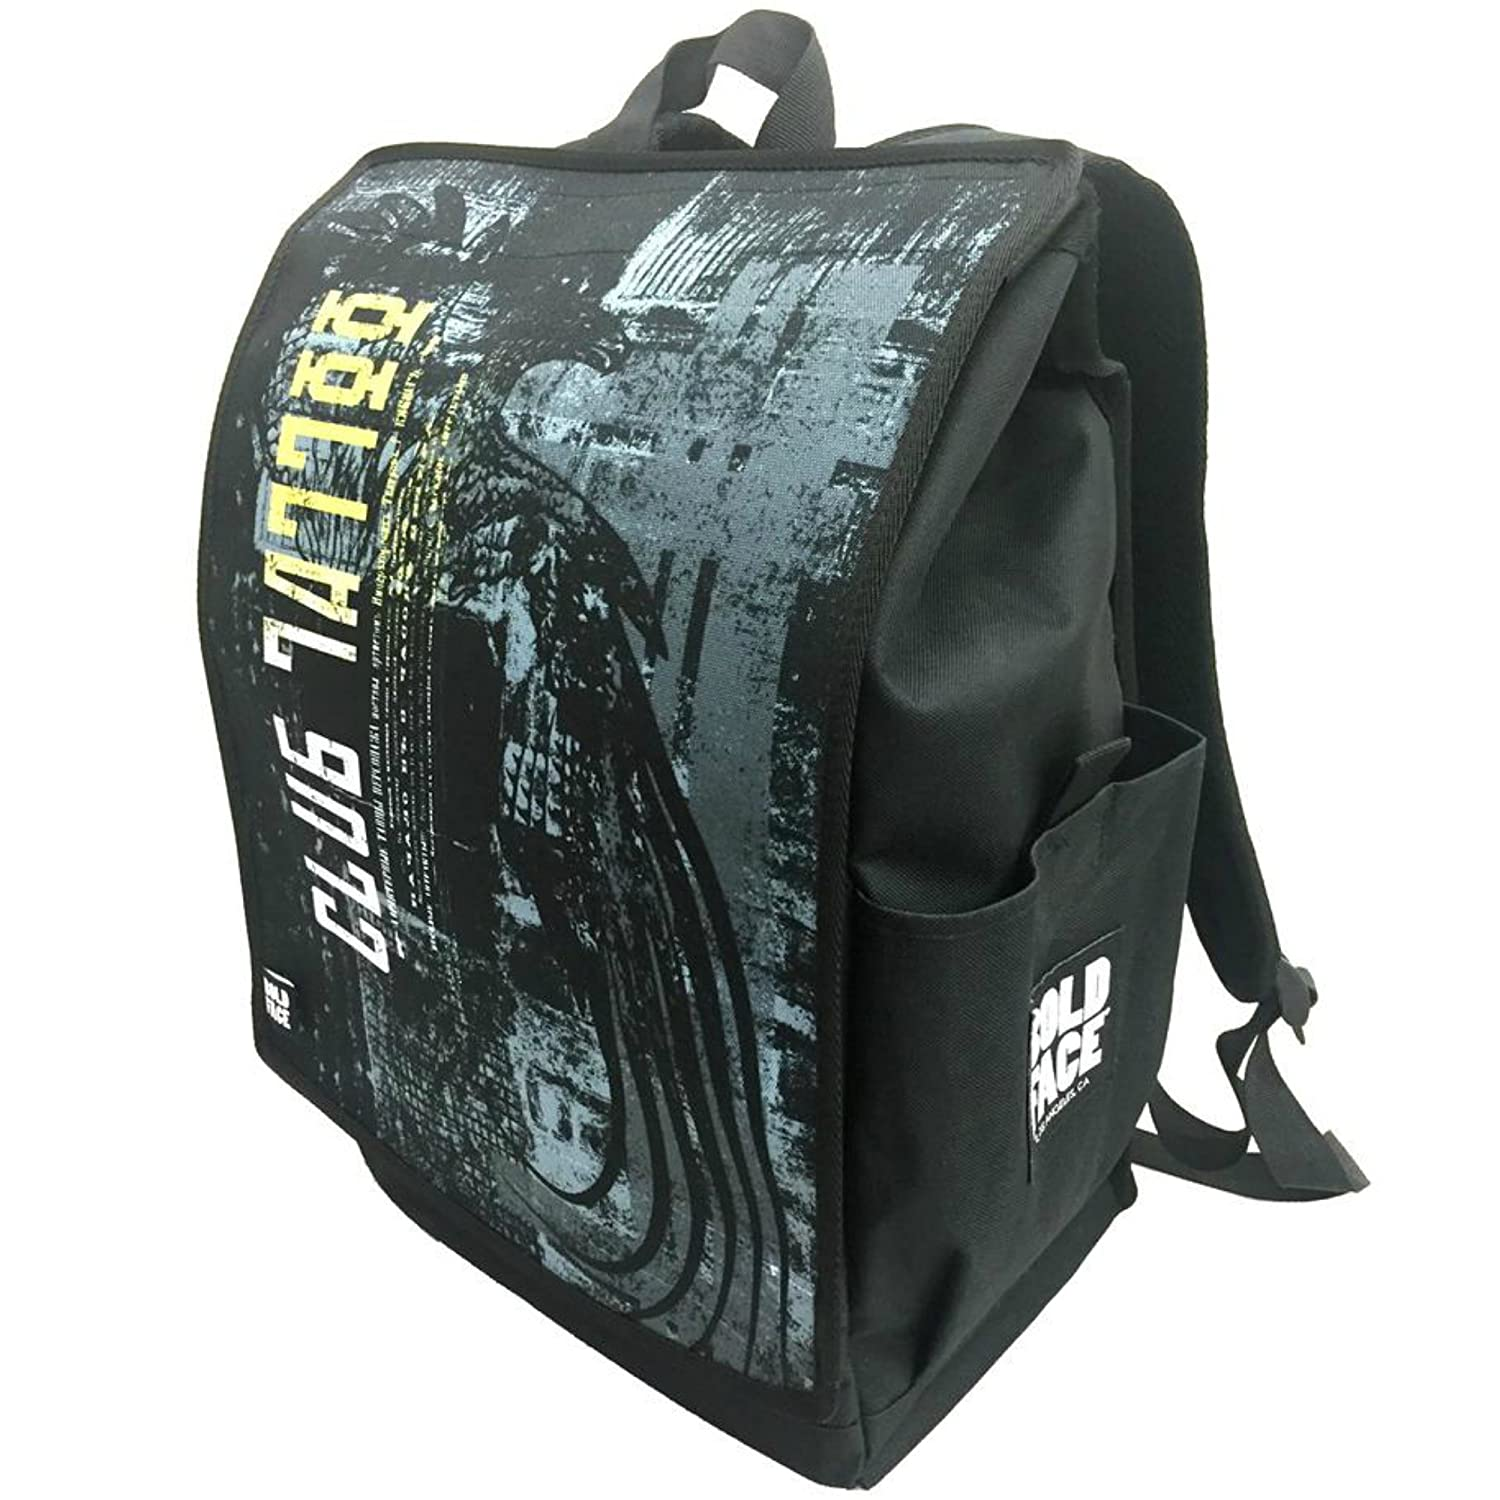 Club Tattoo Backpack SugarSkullMoth